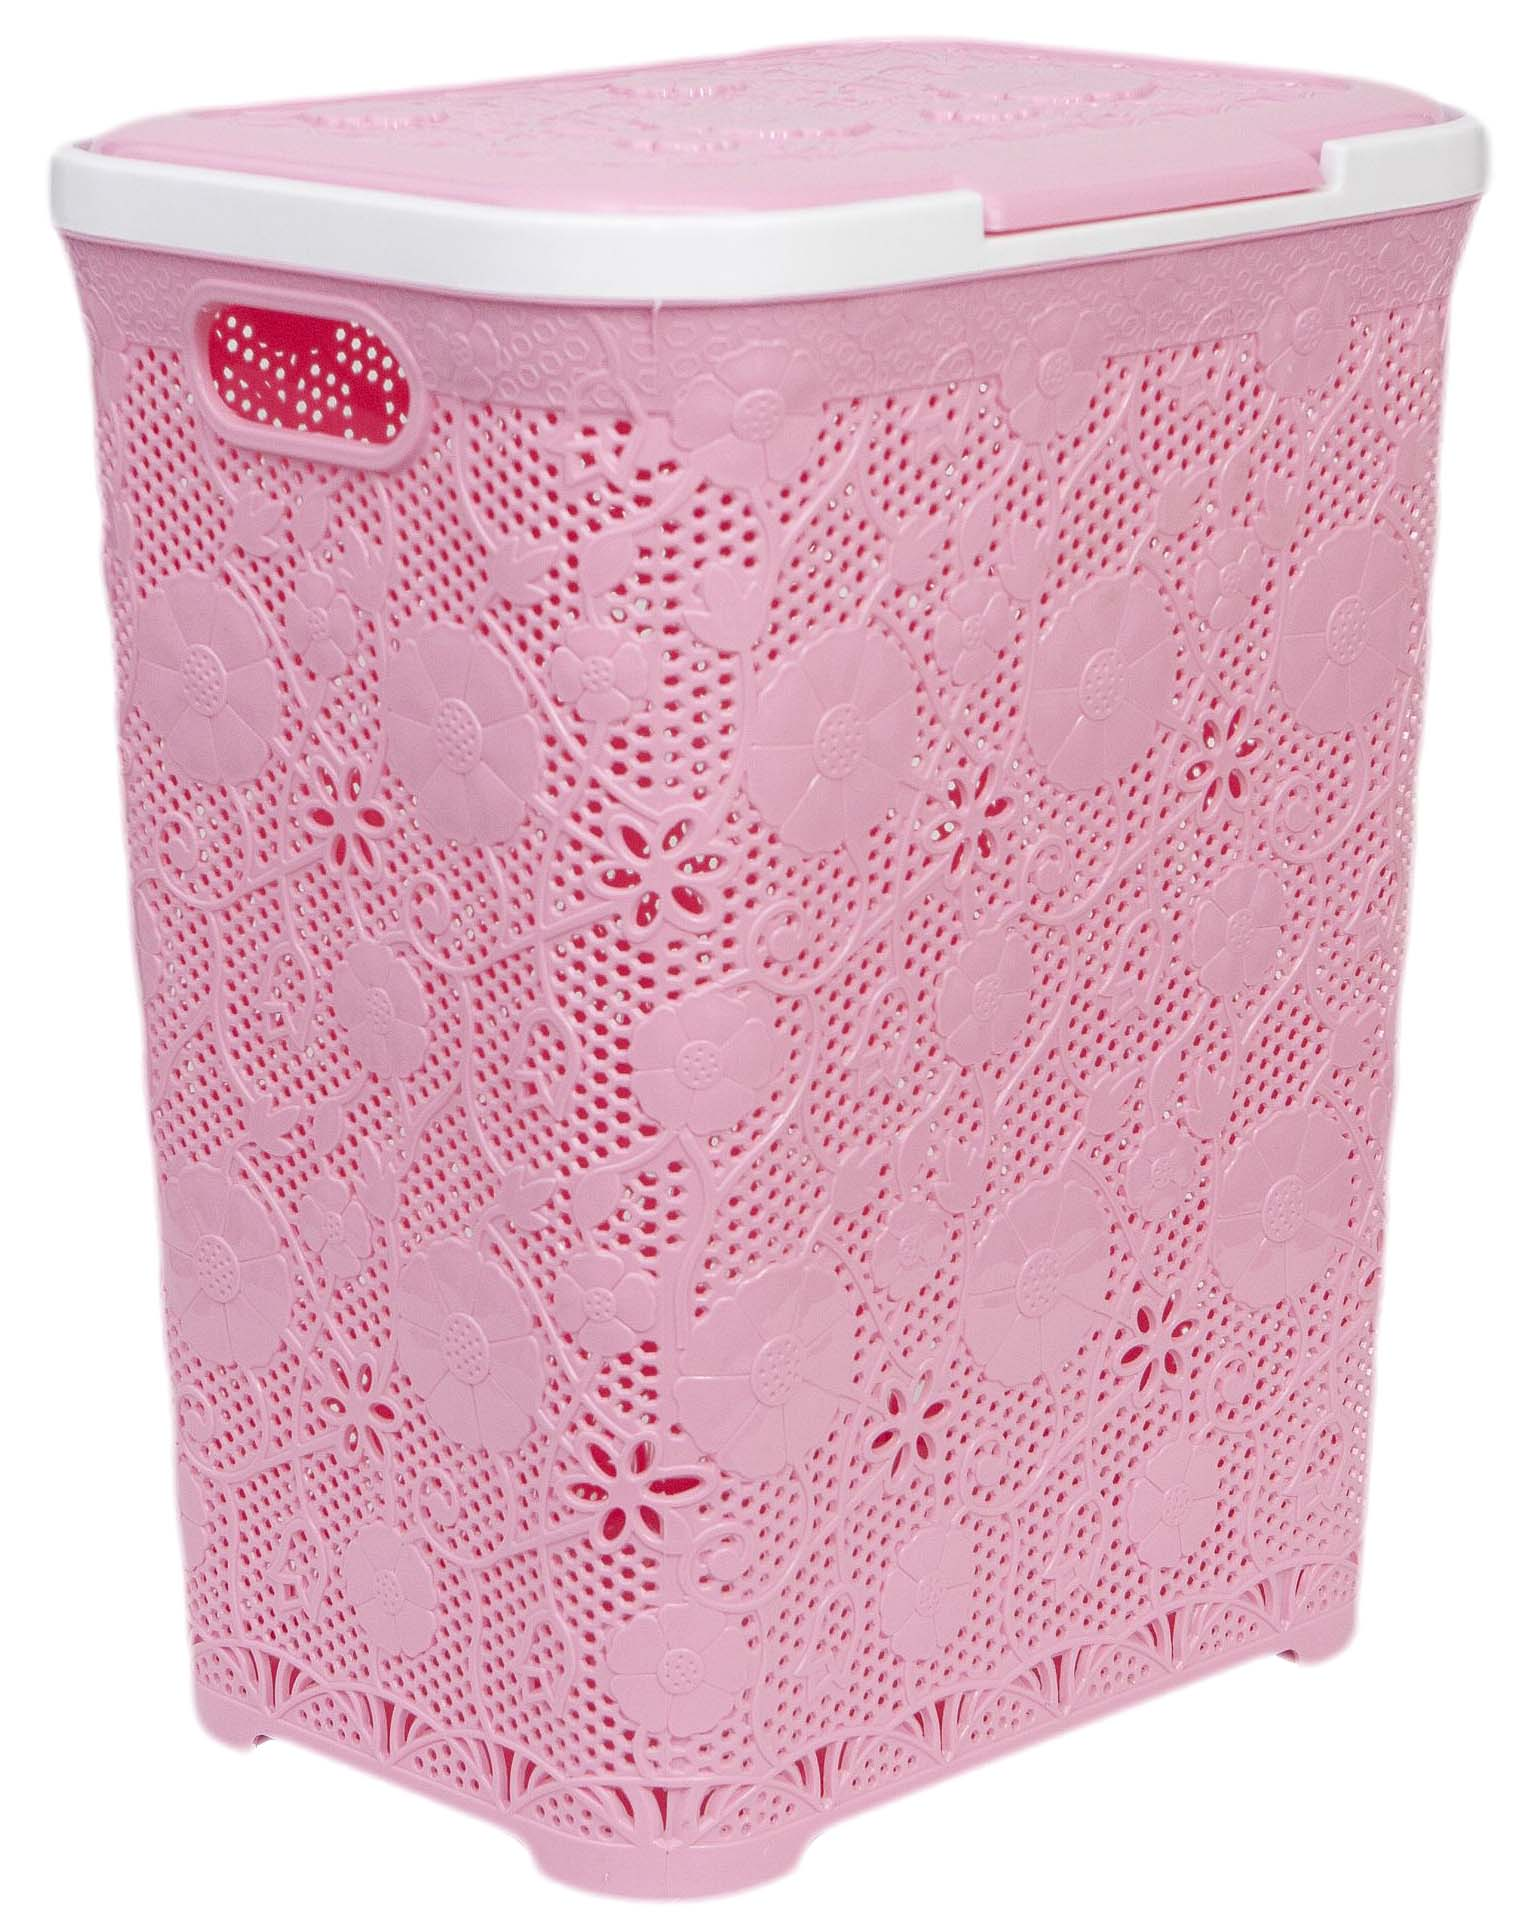 CESTO 60L FLOWER POWER ROSA